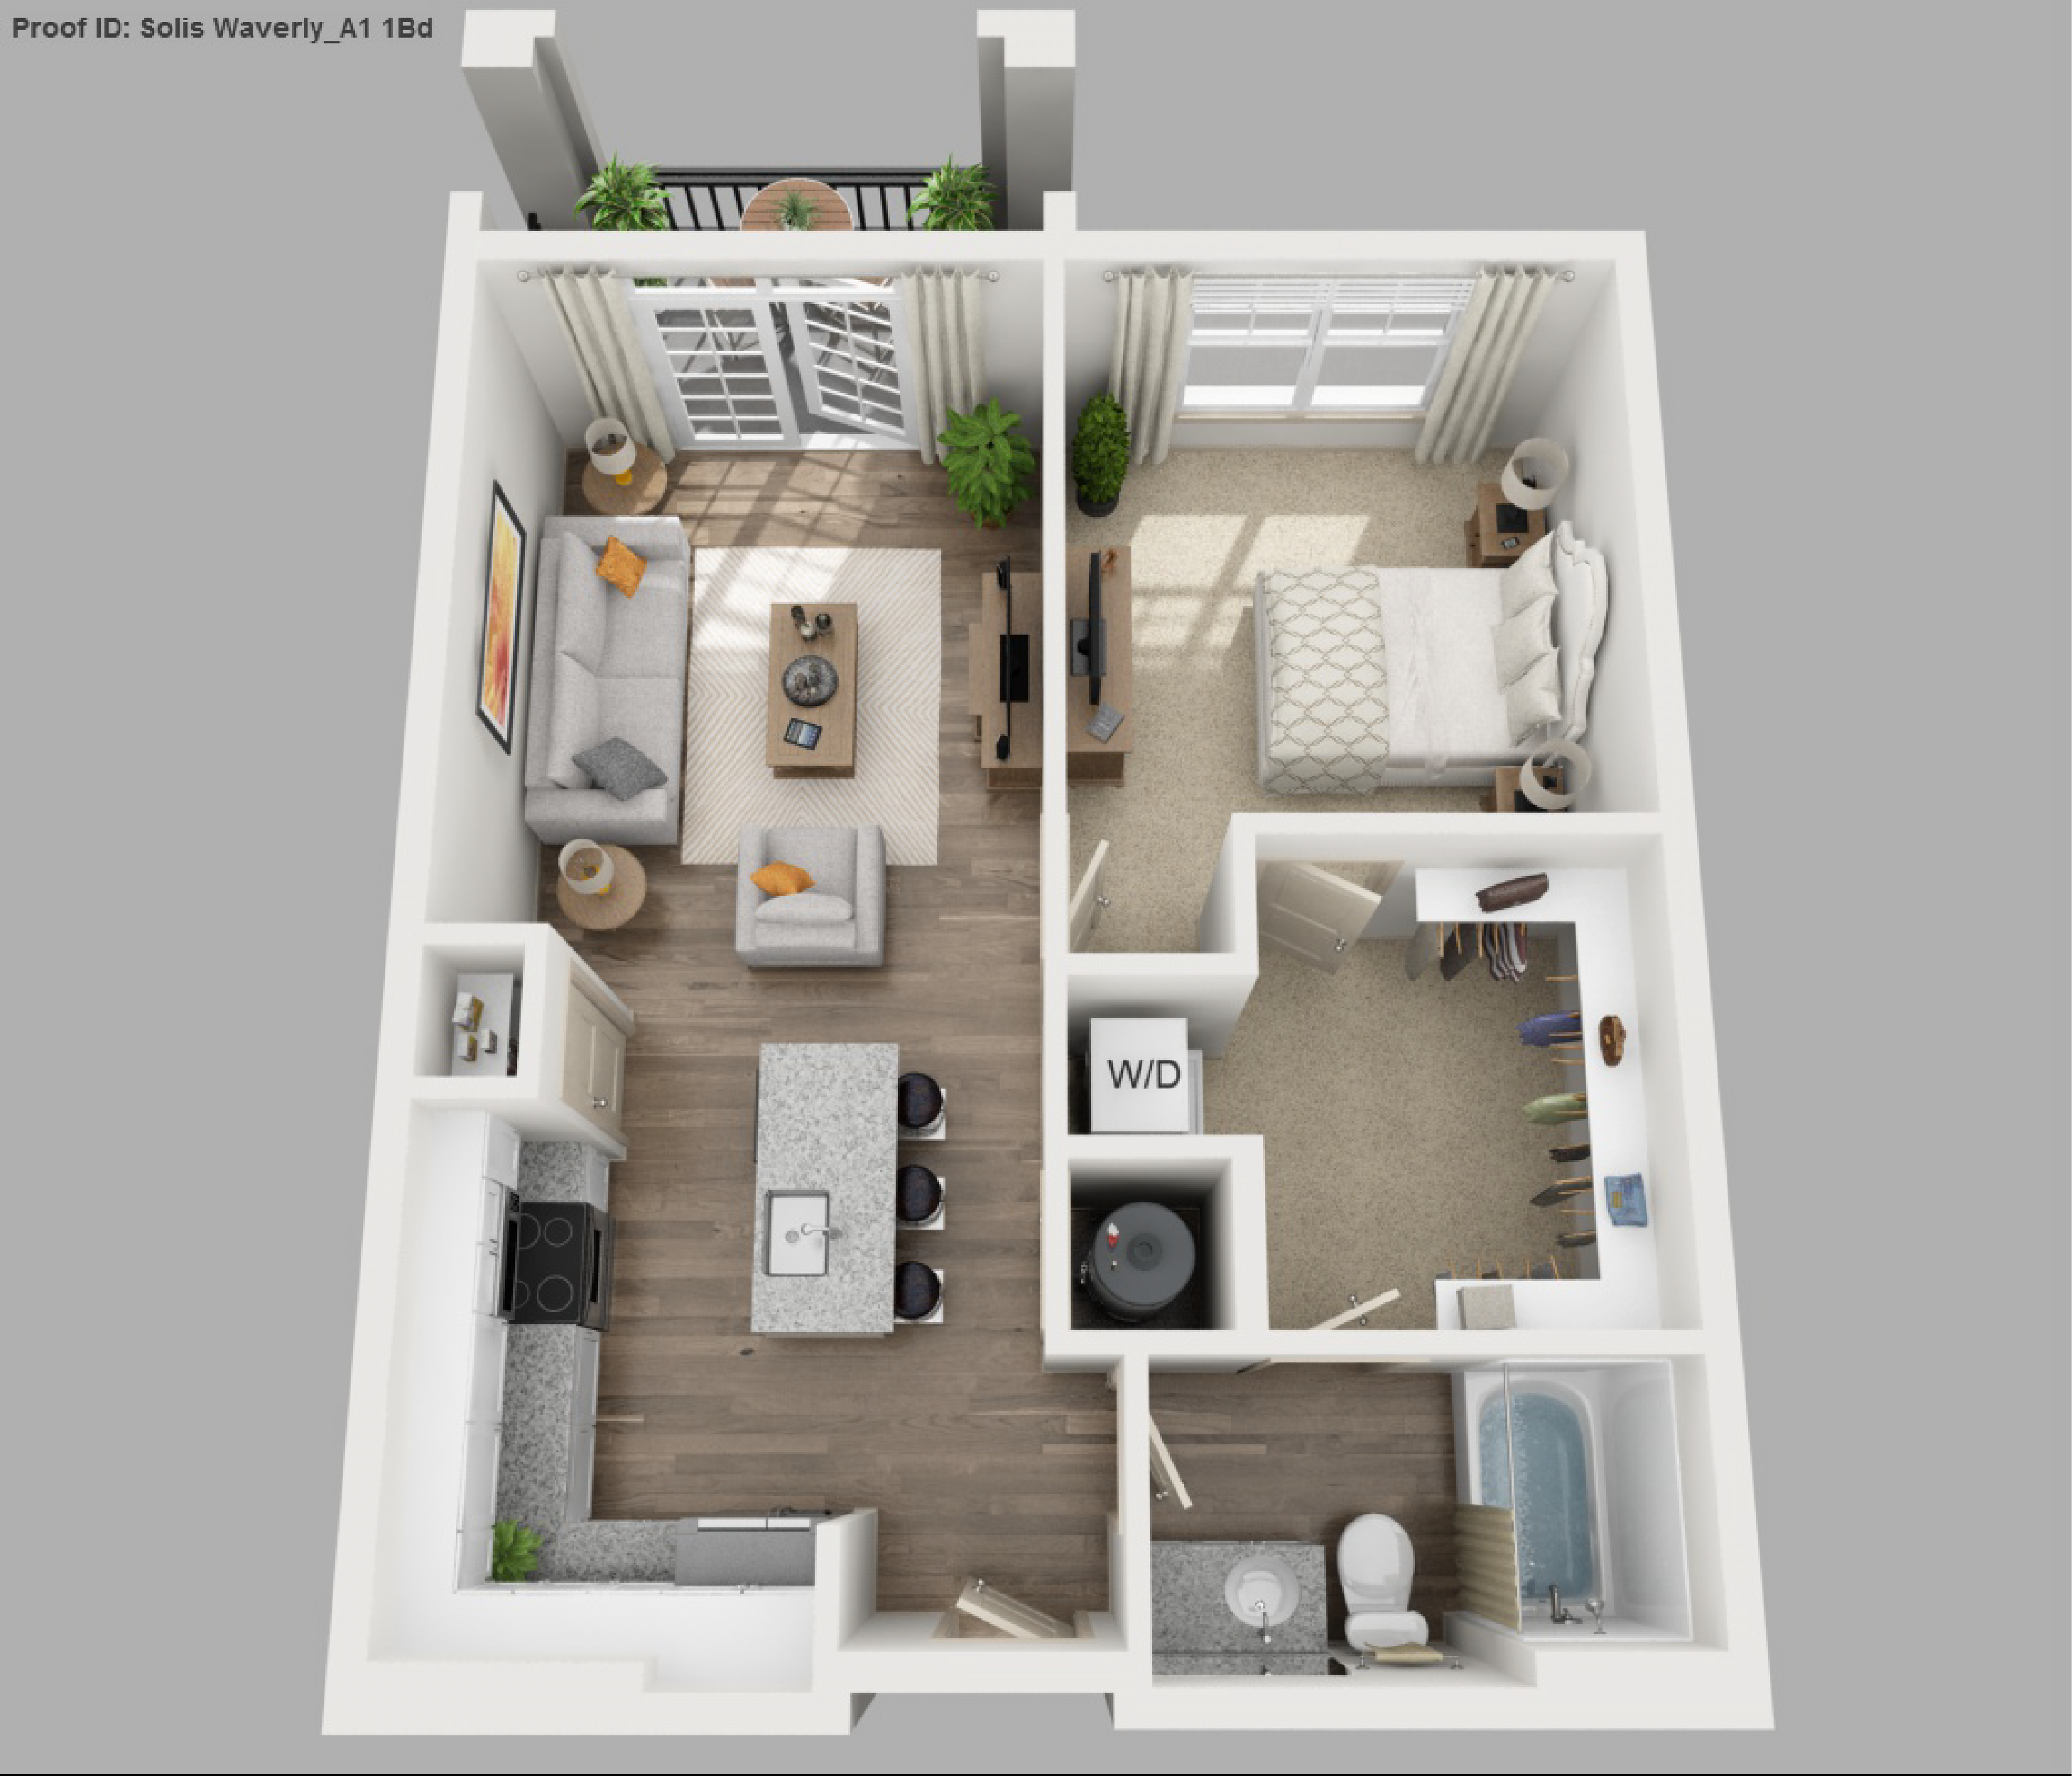 One bedroom apartments floor plans house plans for I bedroom apartment